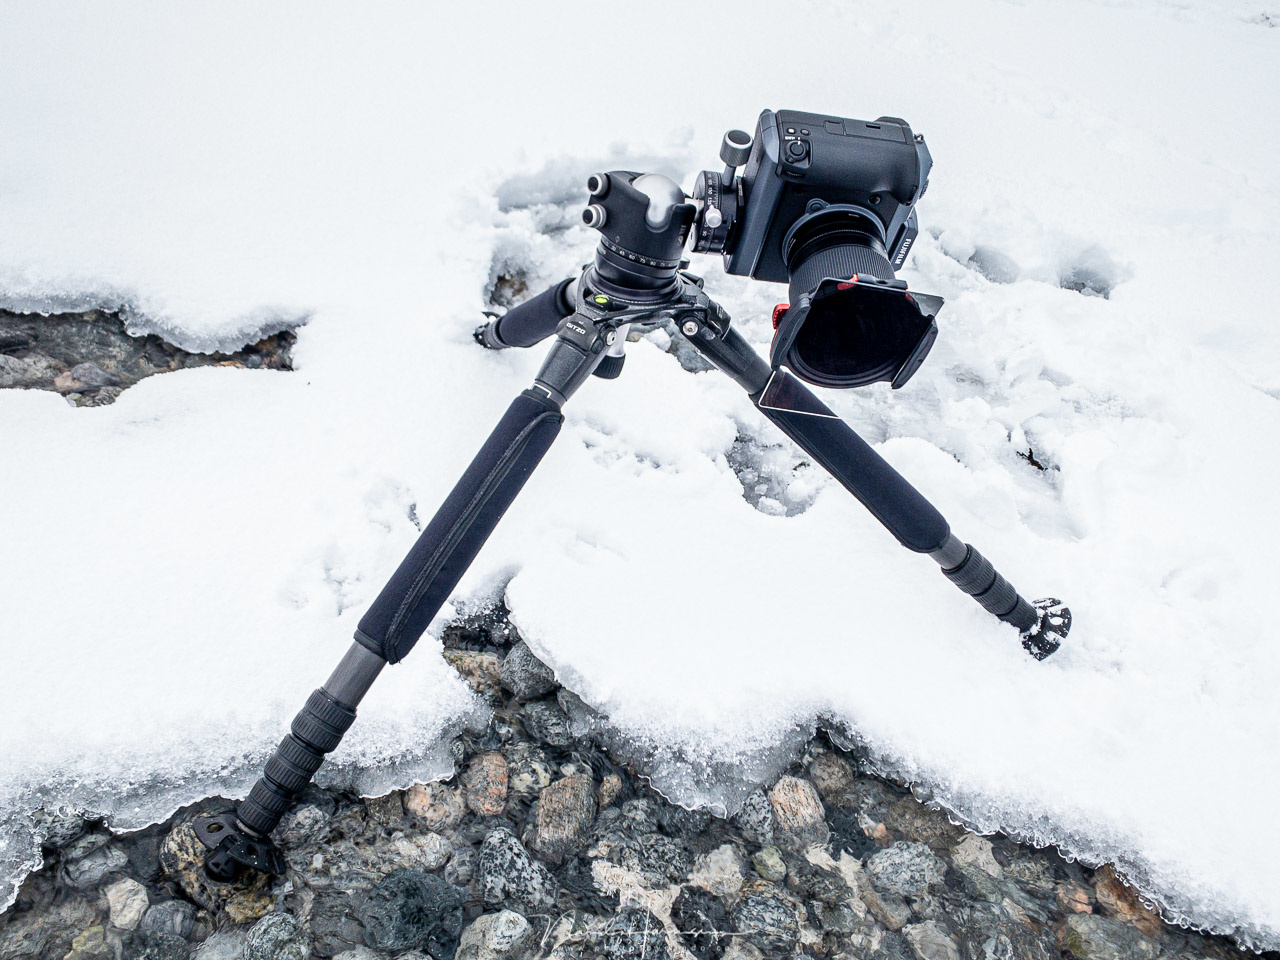 When working in cold environments, you might want to use gloves. The M10 system is easy to use with gloves, but you might have some difficulties when rotating the polarization filter.